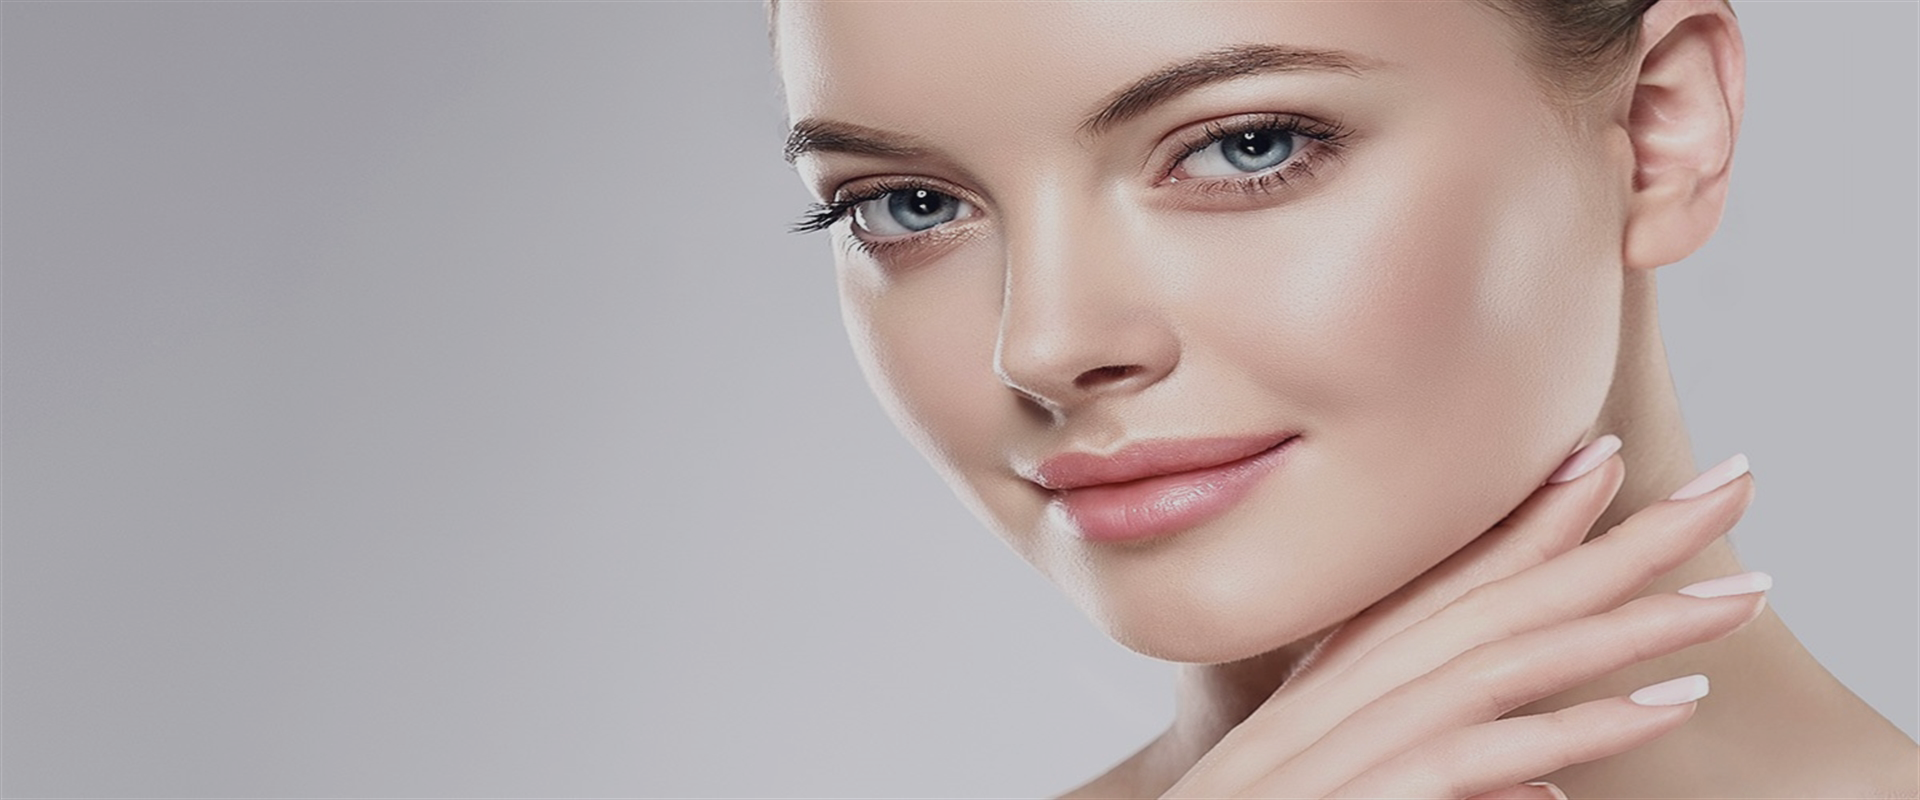 Do you want to have beautiful face in all year round?